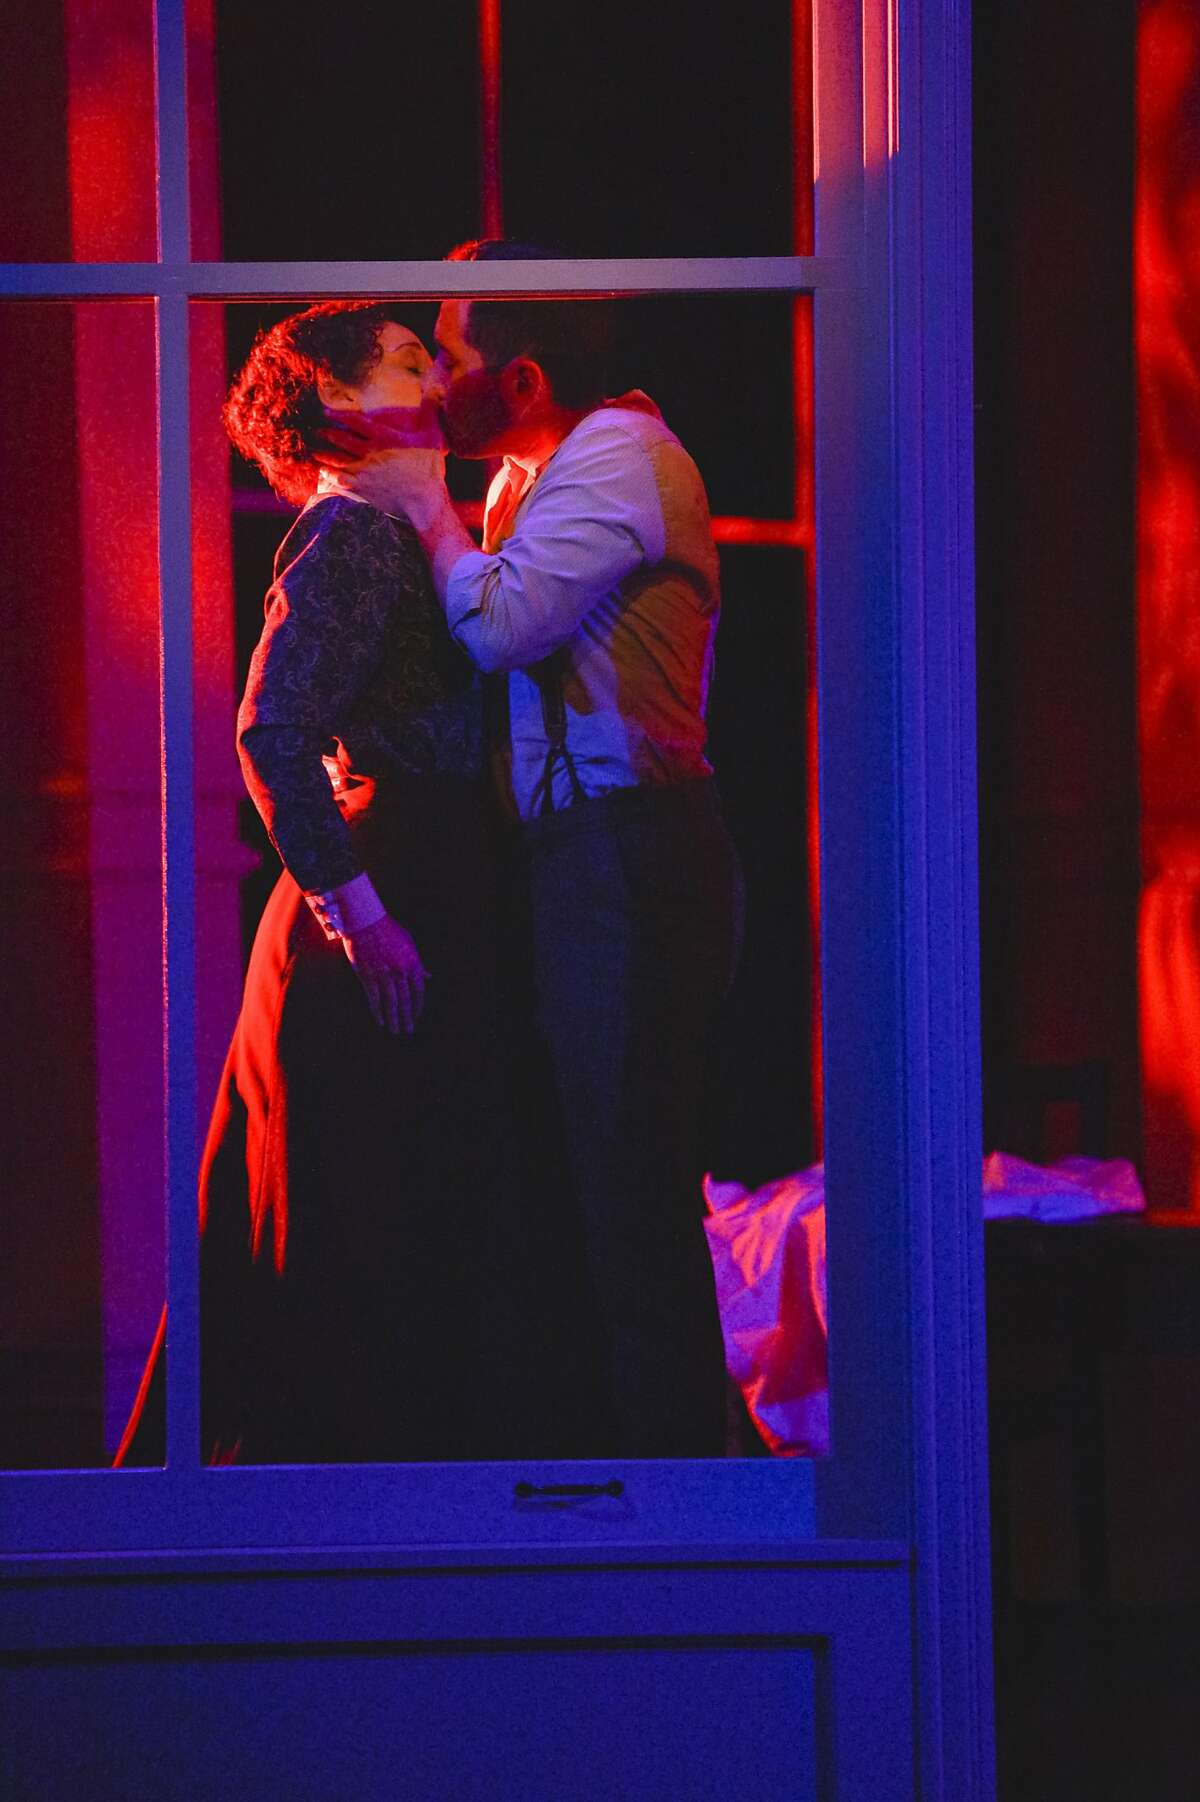 TheatreWorks_Triangle 17_KevinBerne: Sarah (Megan McGinnis) and Vincenzo (Zachary Prince) share a final kiss in TheatreWorks Silicon Valley's World Premiere of Triangle playing July 8 - August 2 at the Lucie Stern Theatre in Palo Alto.